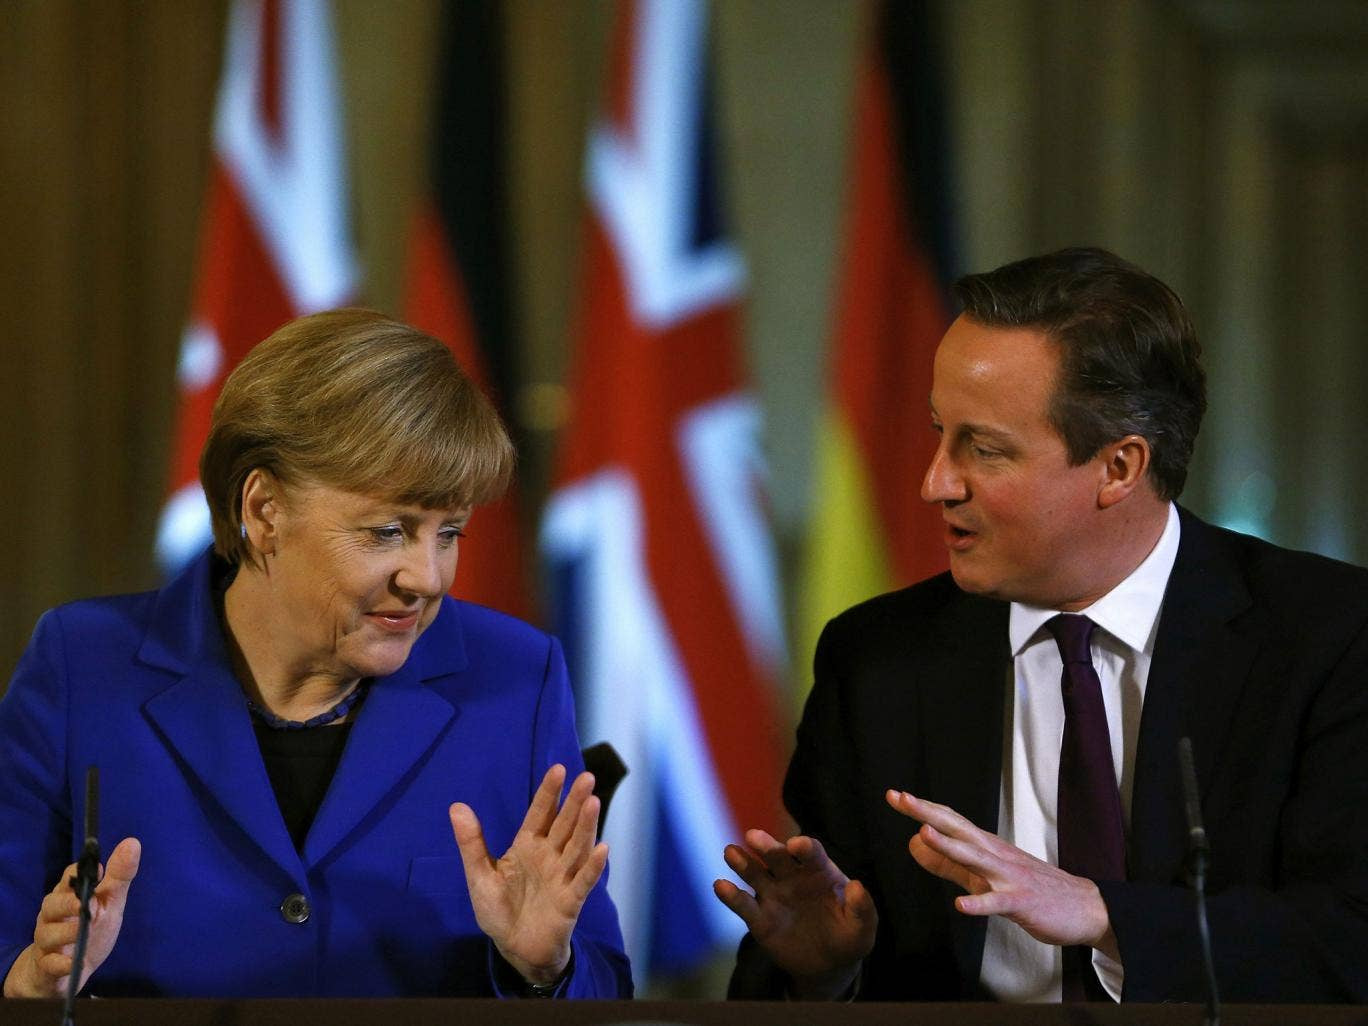 David Cameron has been attempting to gain Angela Merkel's tacit acceptance that a new candidate should to be found for the job